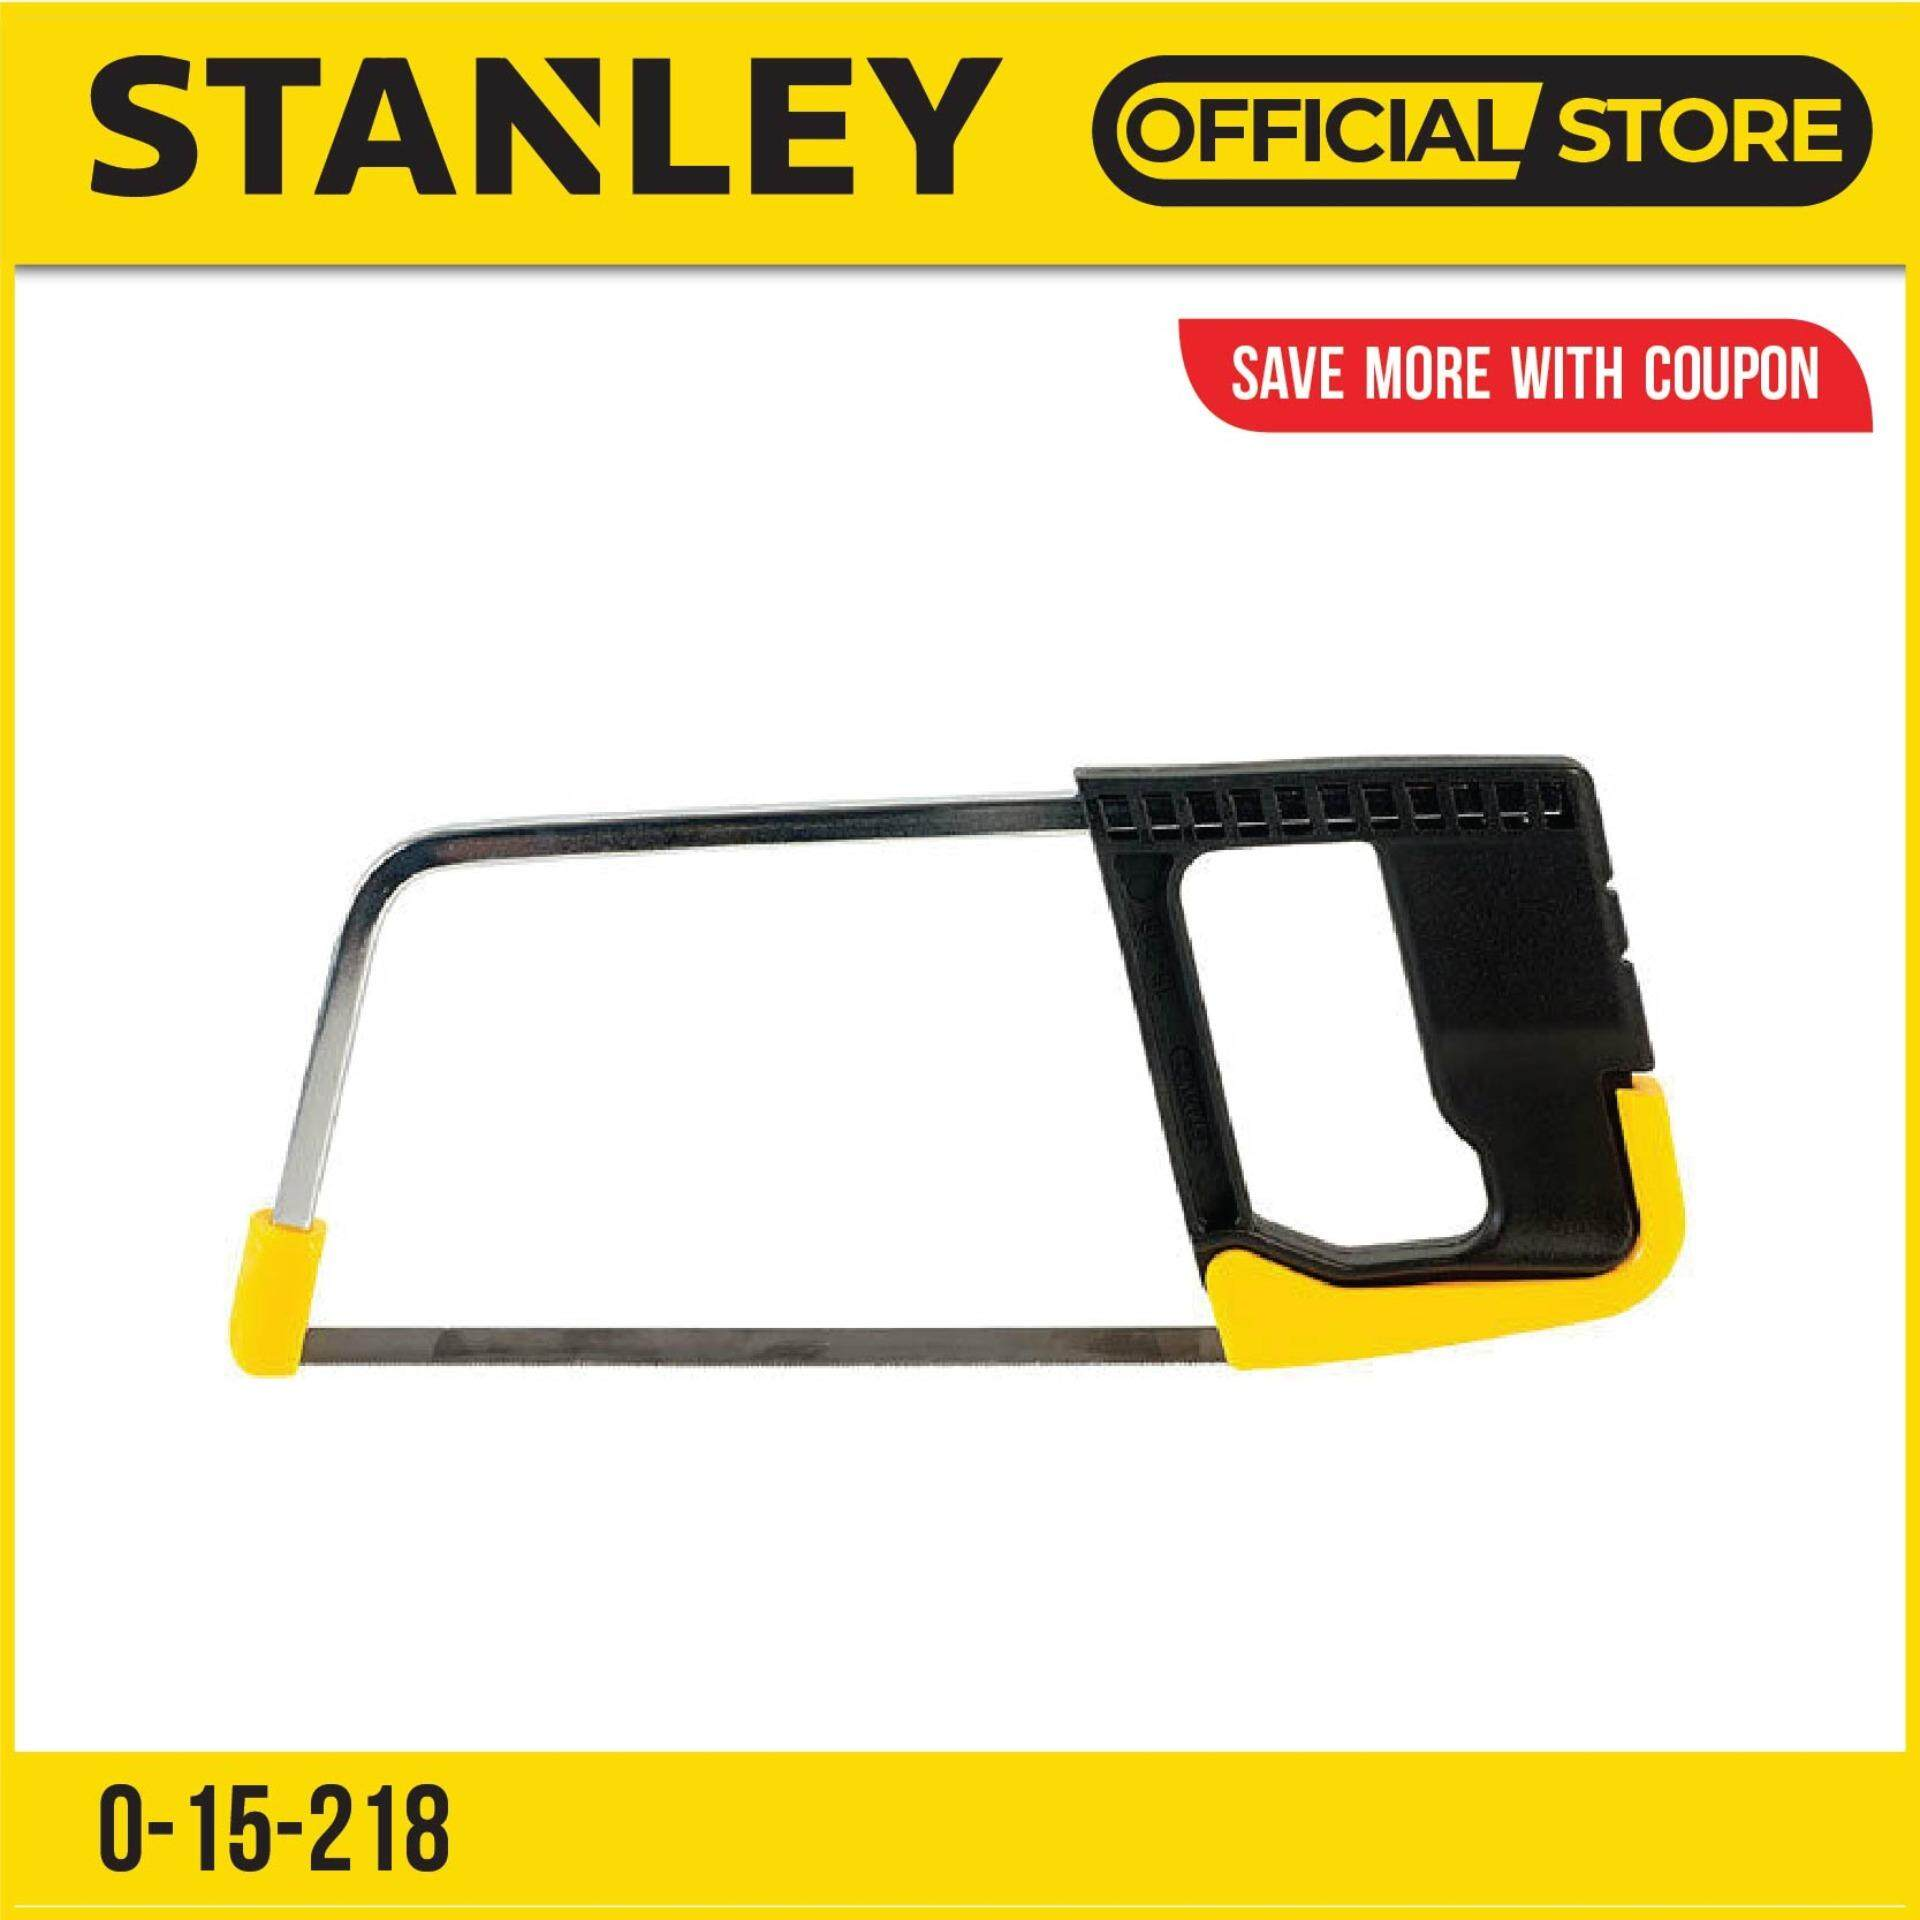 Stanley 0-15-218 (15-218-0) Junior Hacksaw 150mm/6in